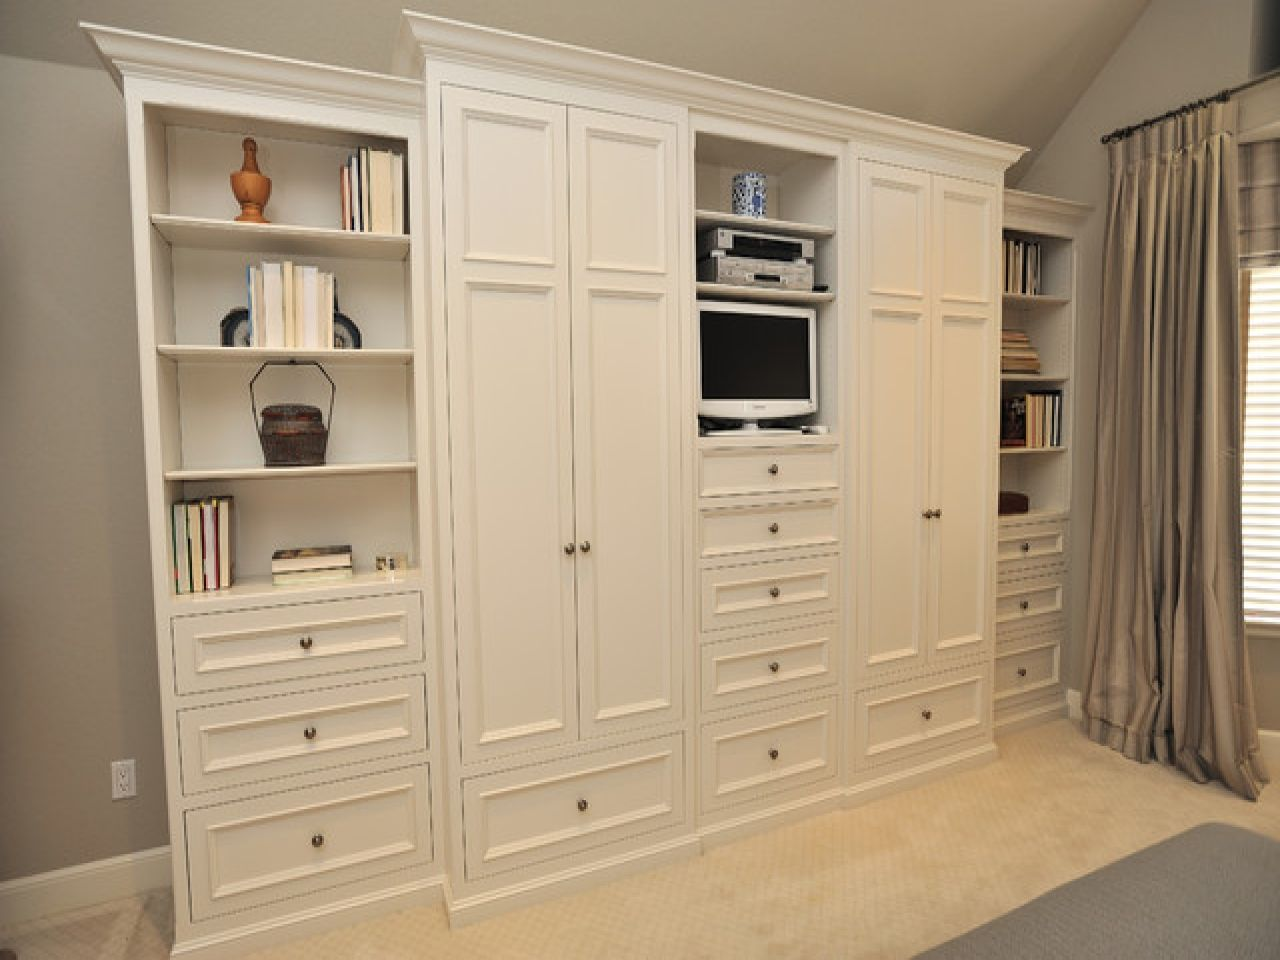 BedroomWallUnitsWithDrawersMasterBedroomWallStoragewhite - Bedroom furniture with lots of storage